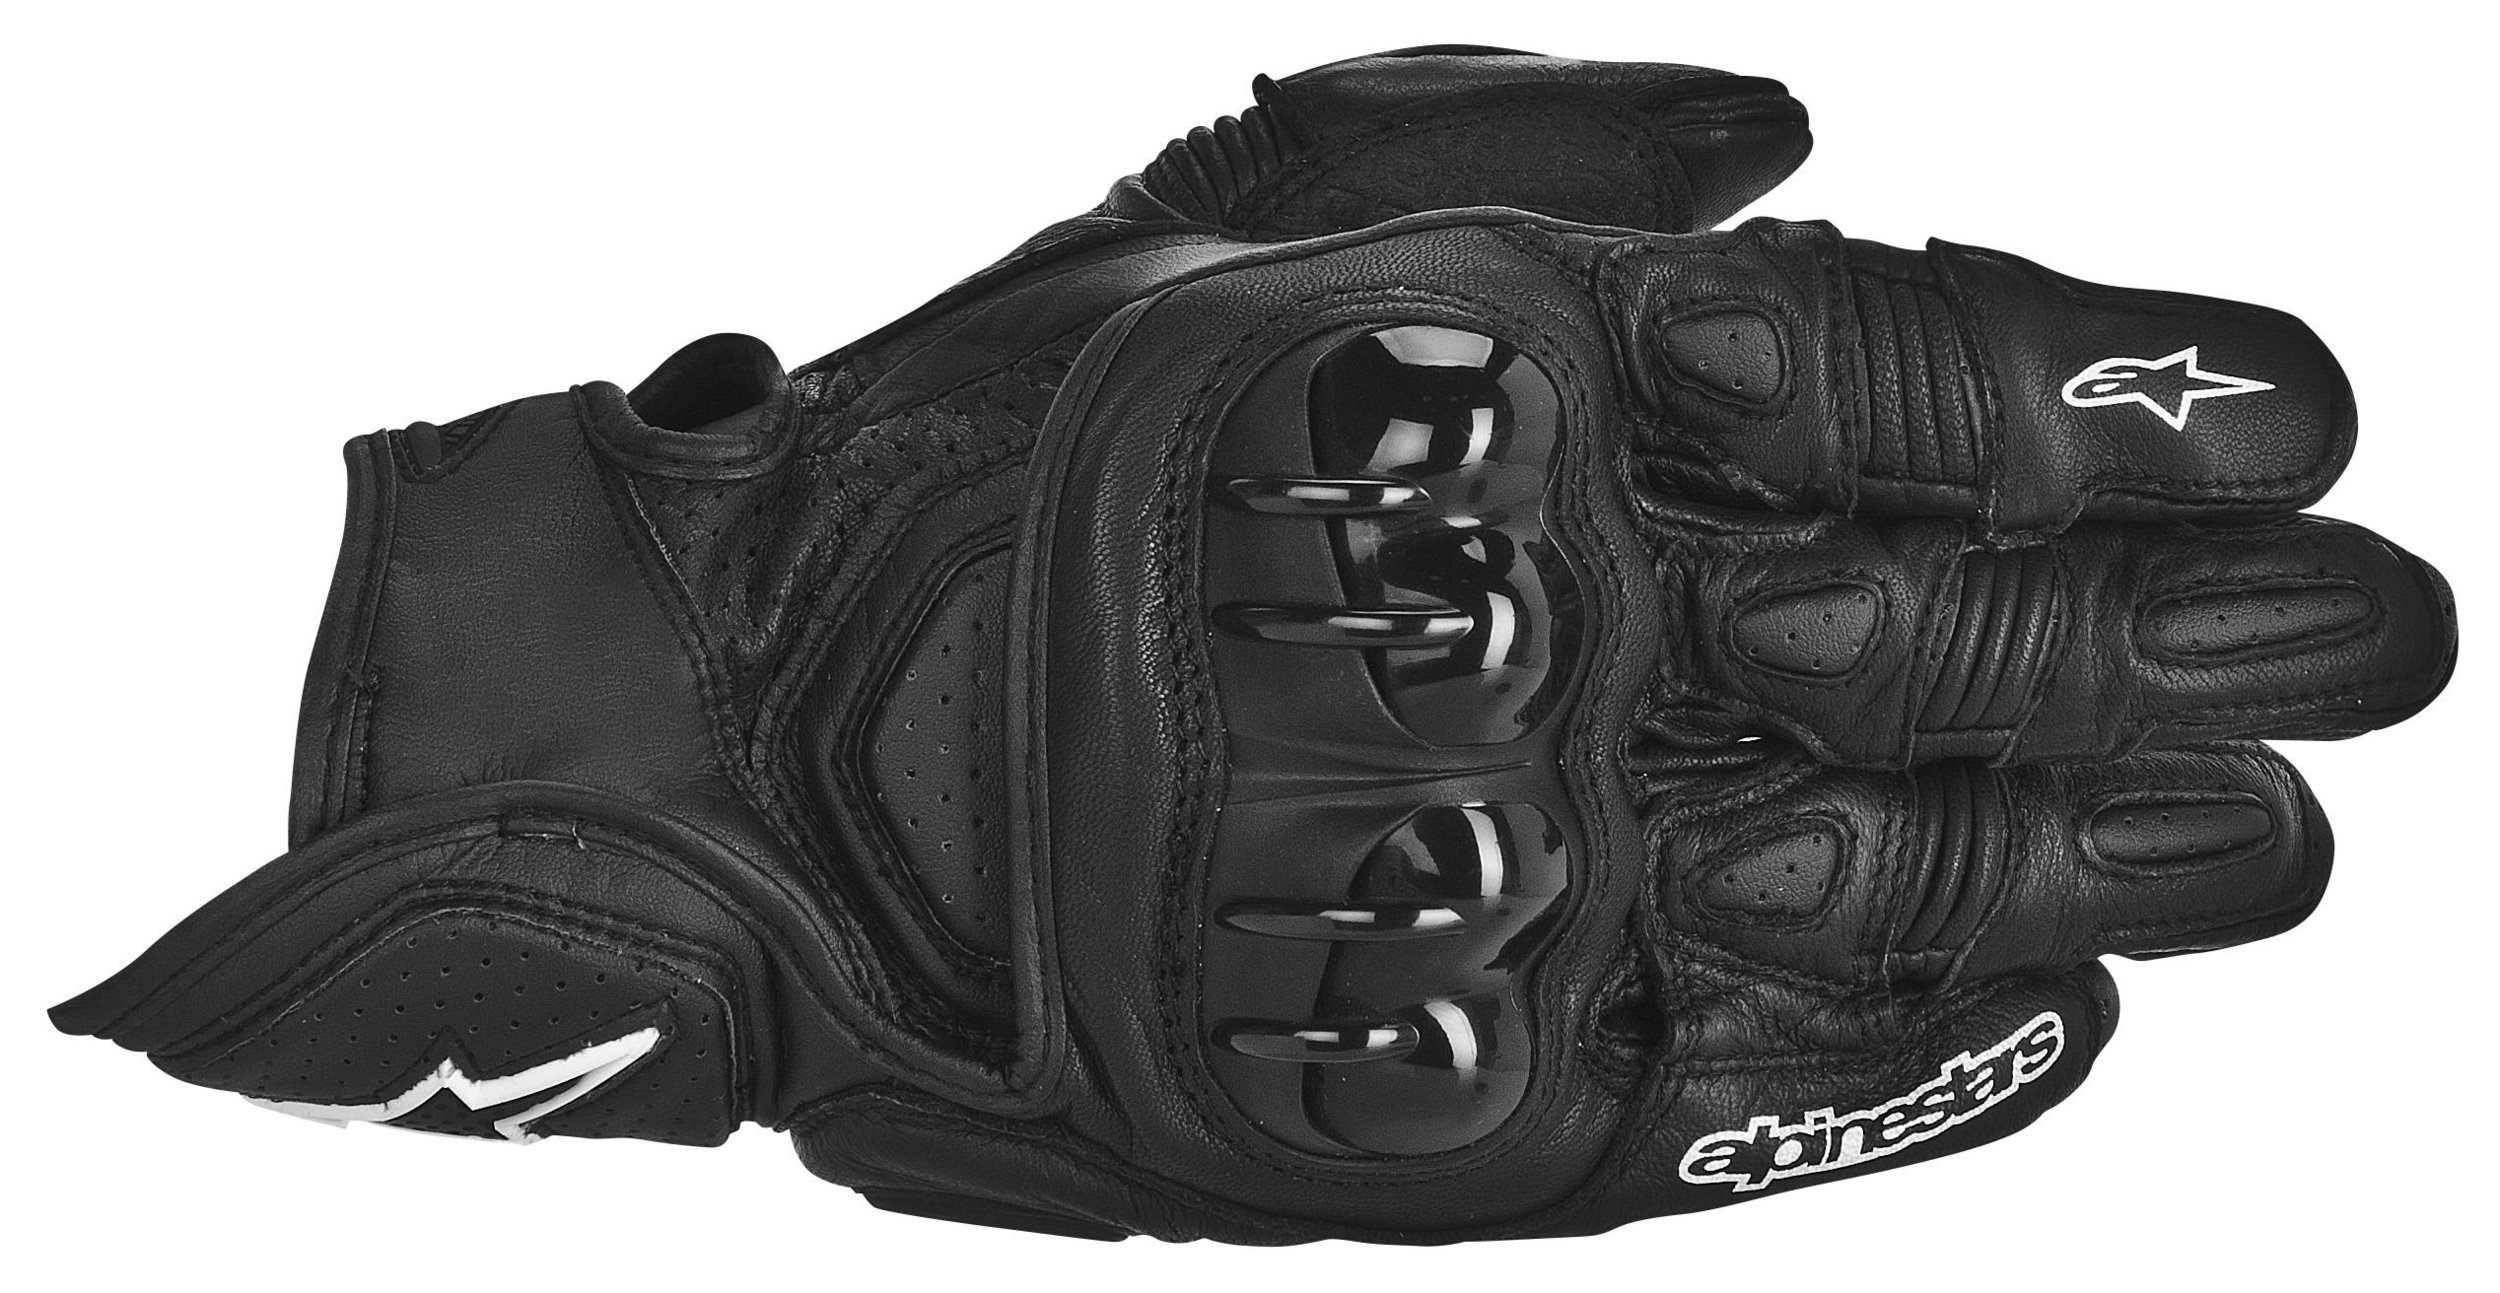 alpinestars_gpx_gloves.jpg